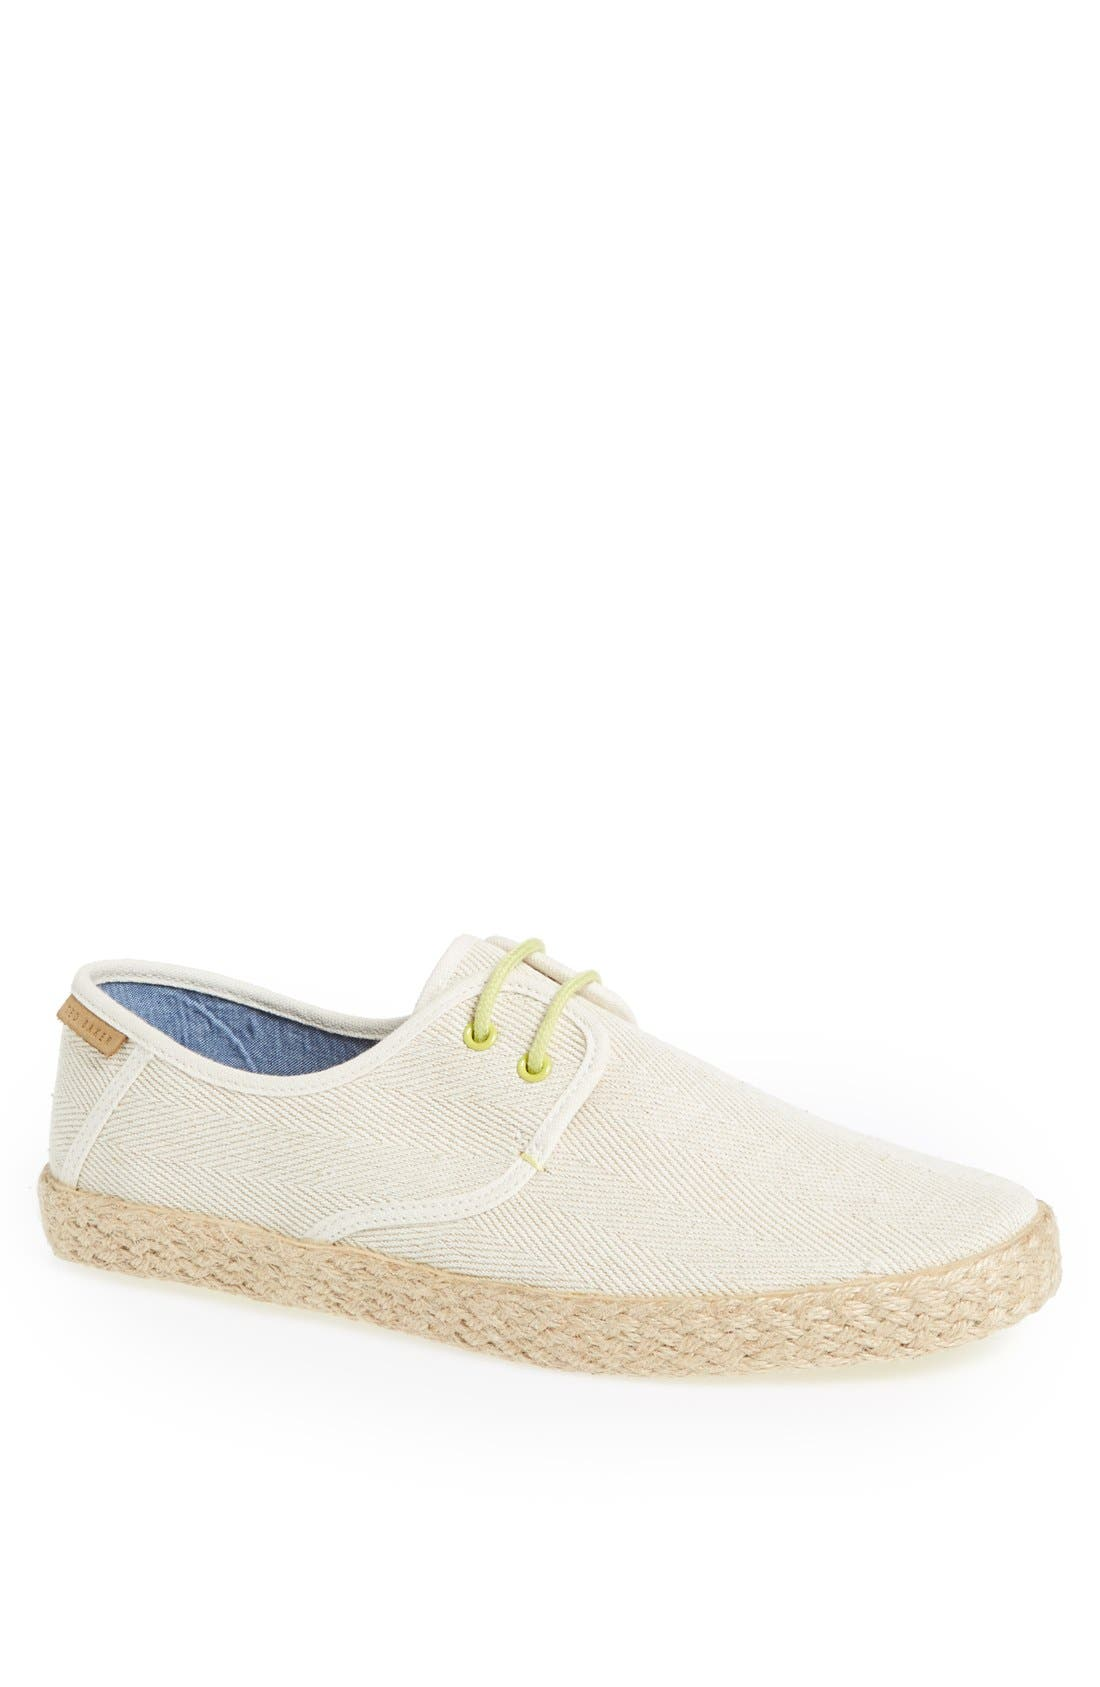 Main Image - Ted Baker London 'Drilll 3' Espadrille Sneaker